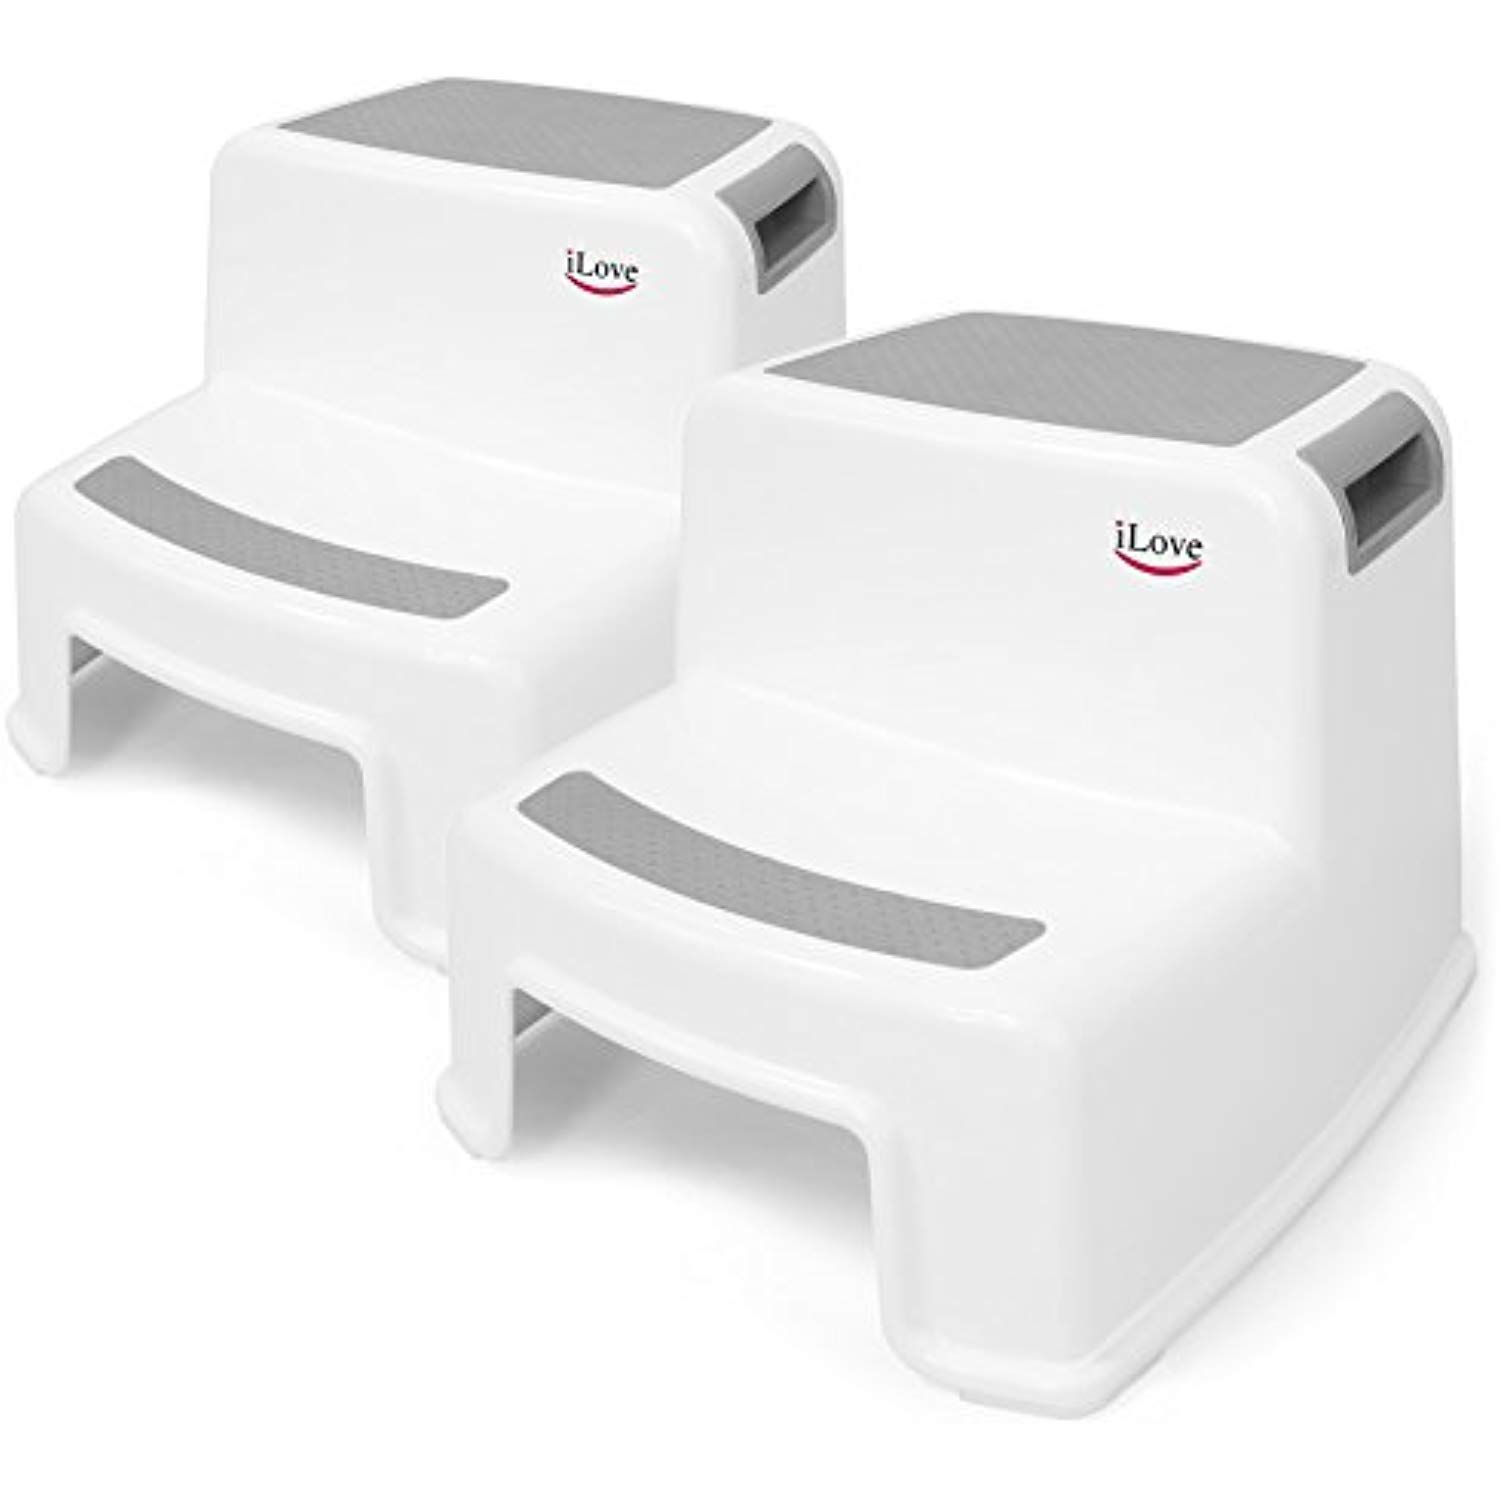 2 Step Stool For Kids 2 Pack Toddler Stool For Toilet Potty